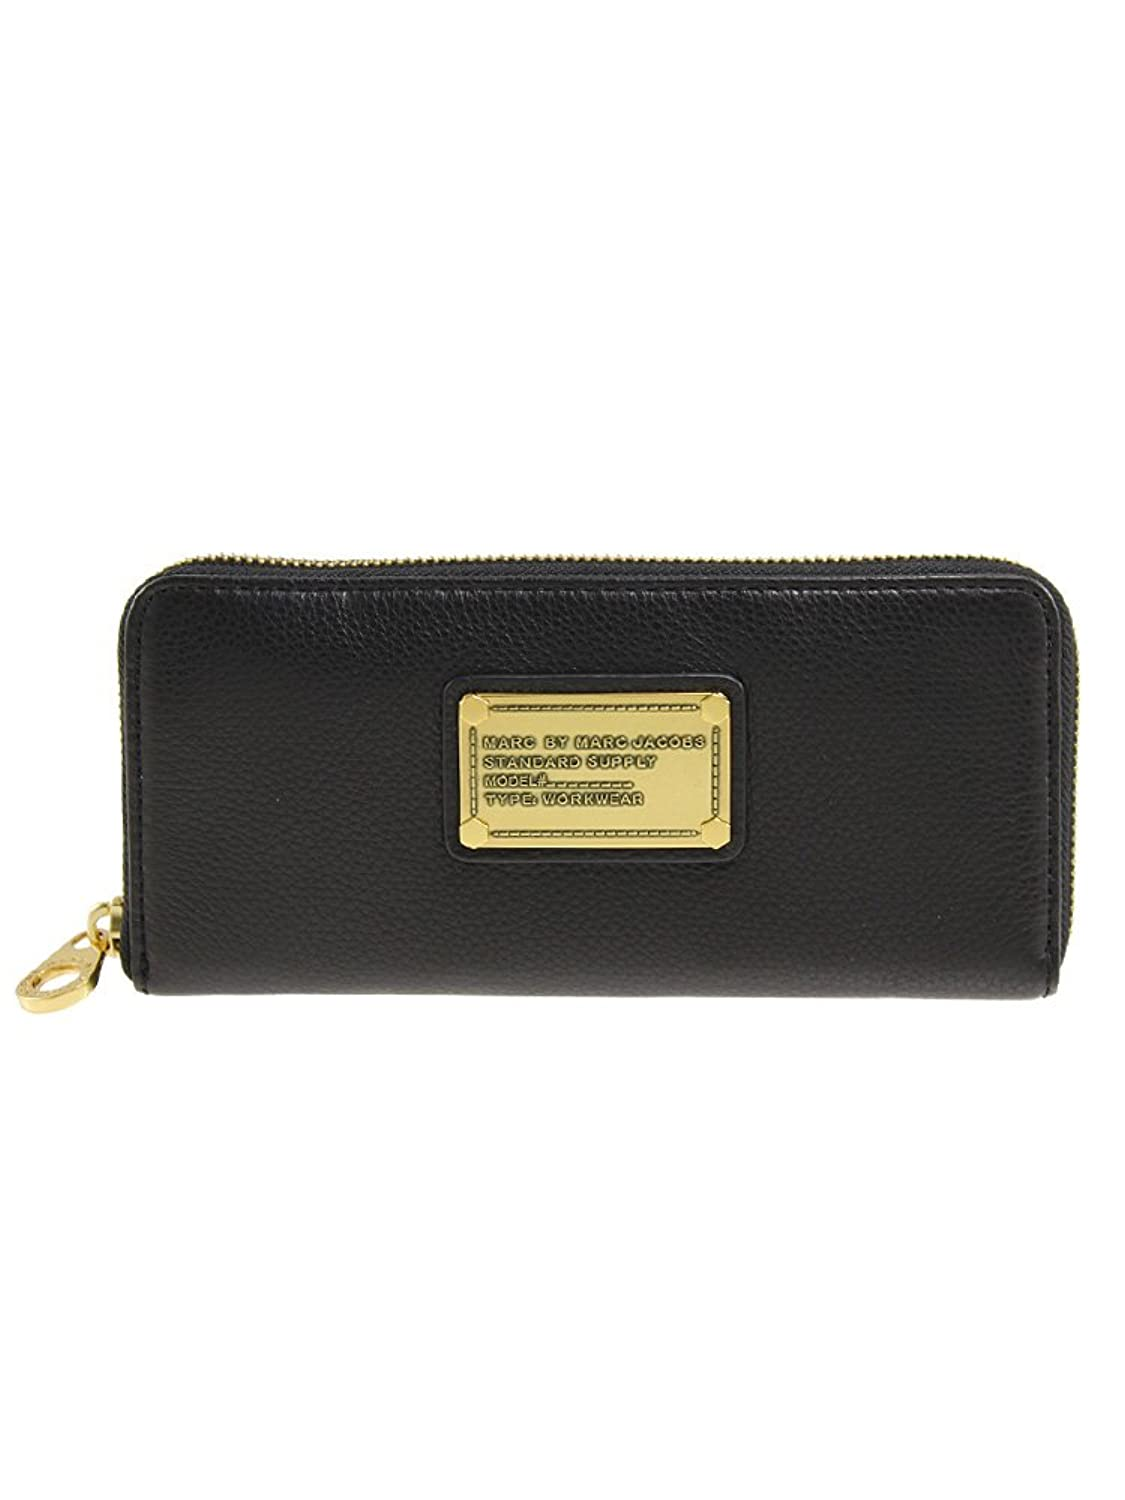 72489e3a3500 MARC♪☆BYMARC JACOBS マークバイマークジェイコブス MARC BY MARC JACOBS M3PE093